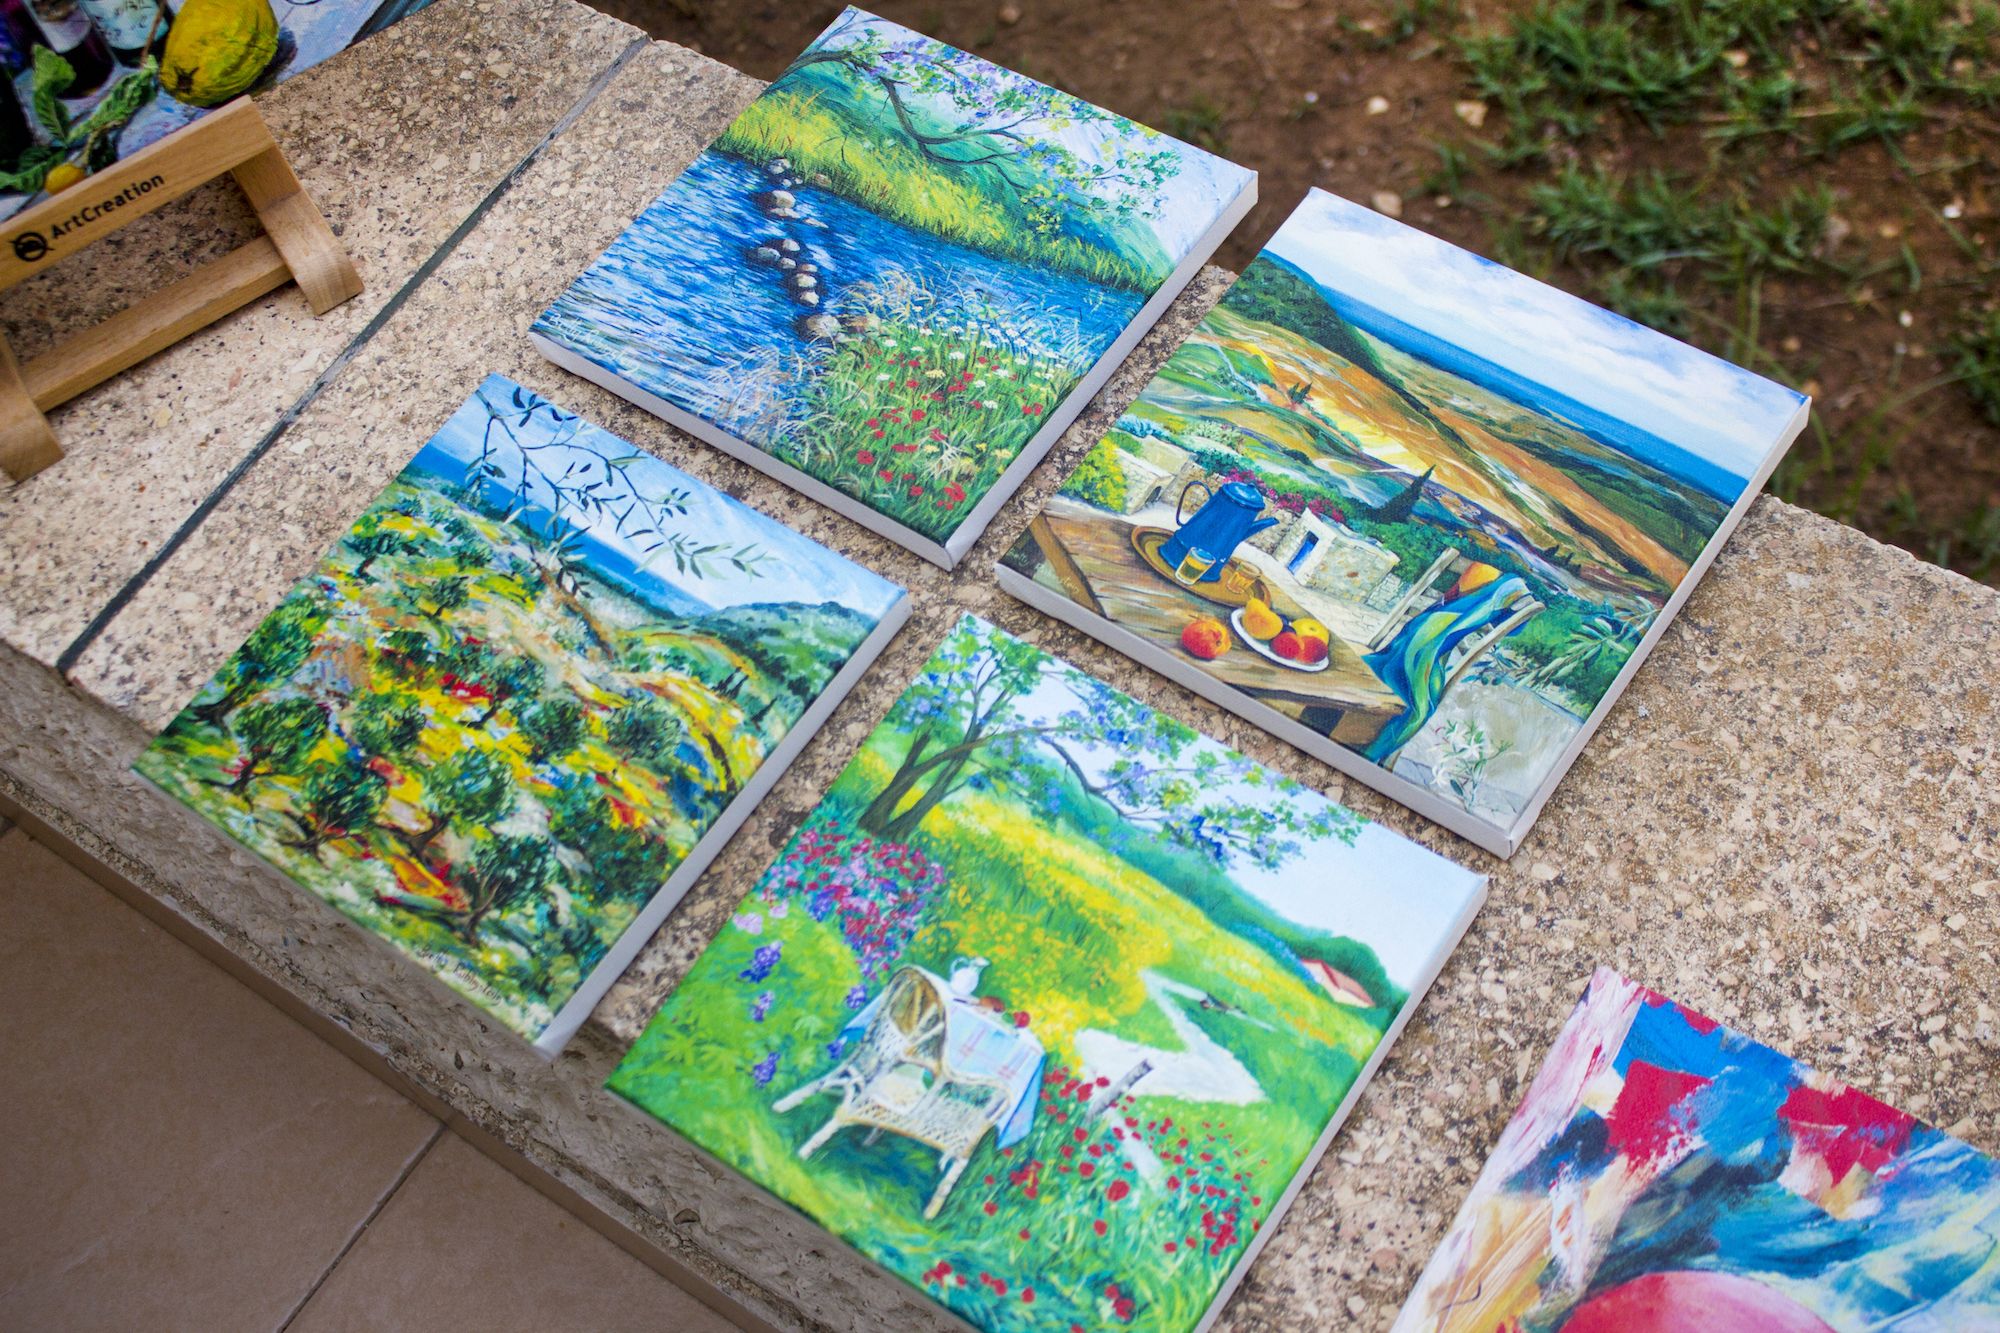 Artwork by Betty Rubinstein at her studio in Zikhron Ya'akov, Israel, 2017.